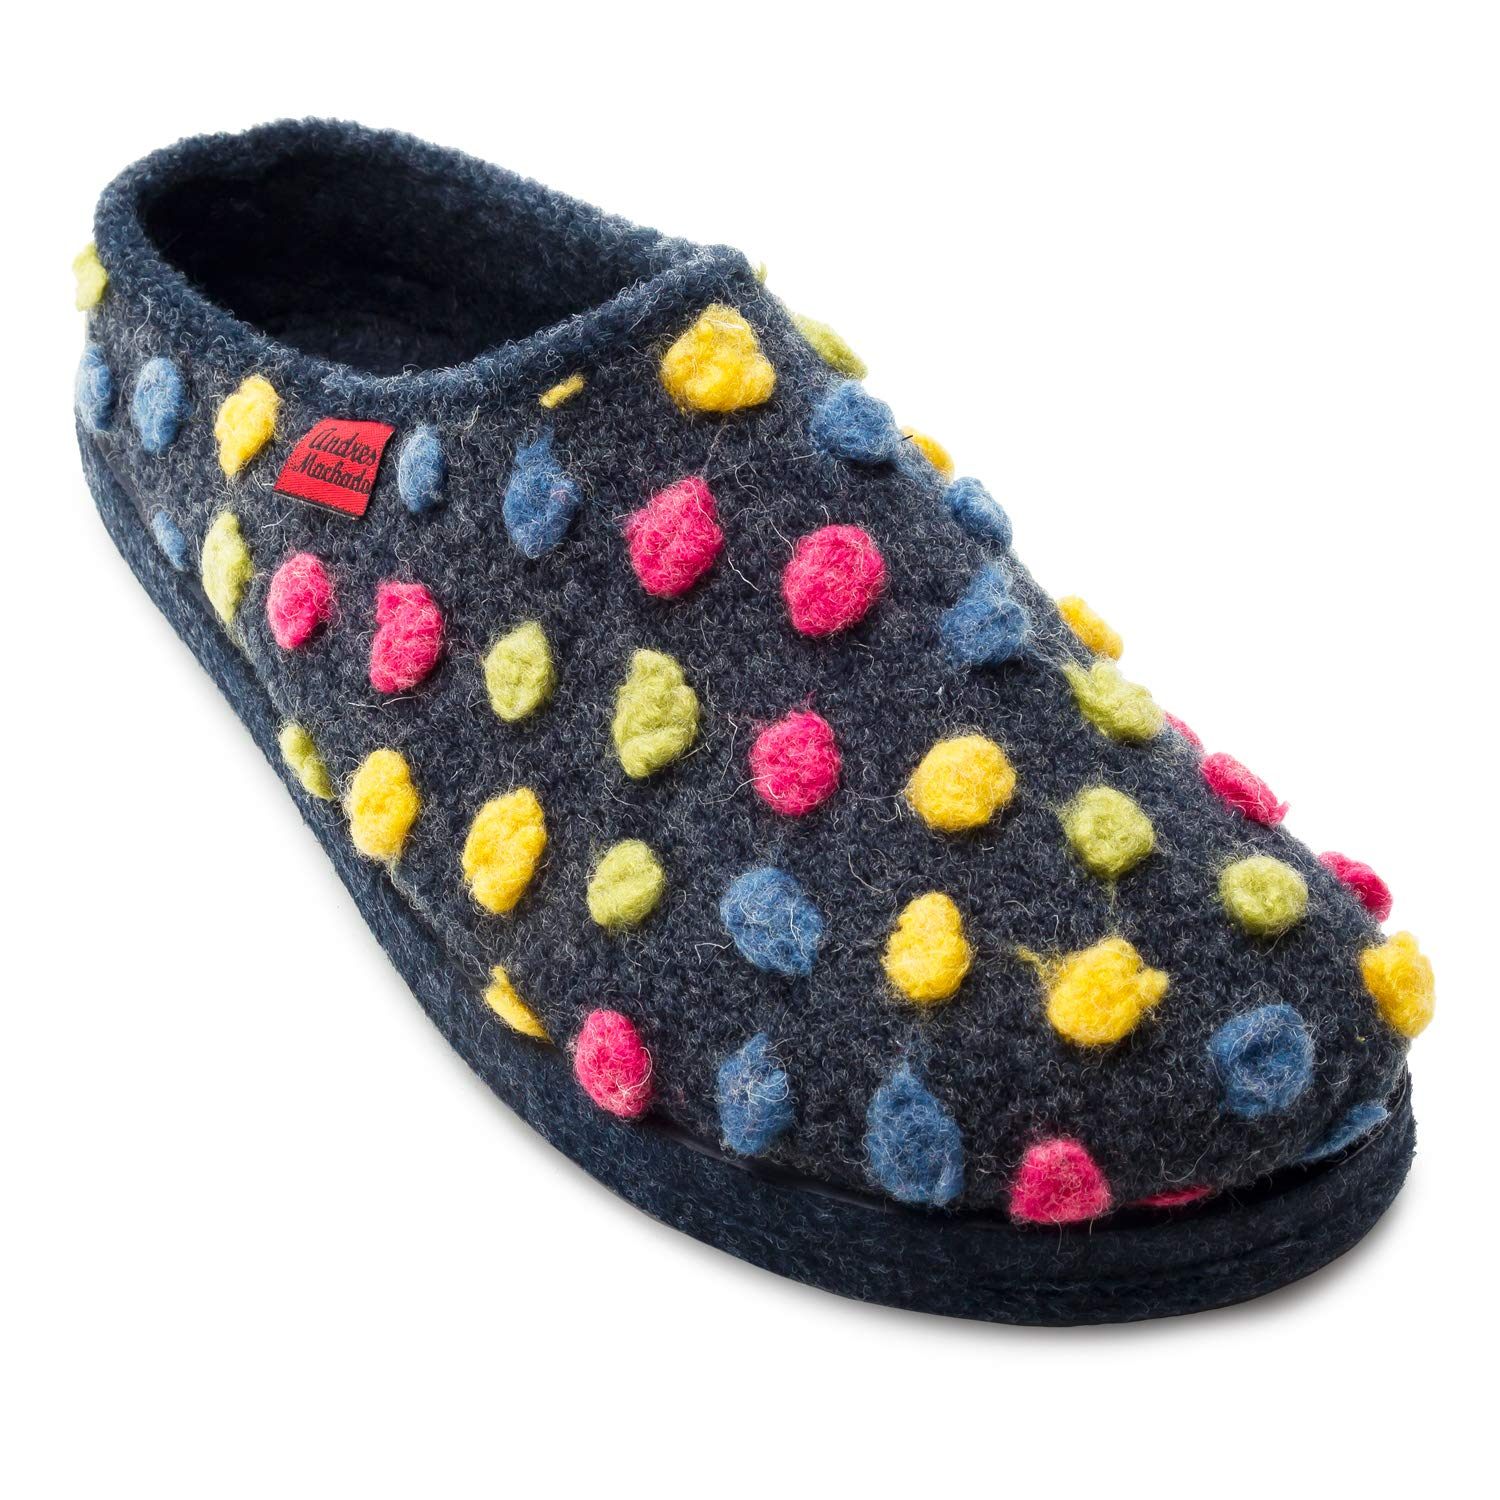 Andres Machado AM001 Comfortable Felt Slippers with Footbed Made in Spain Unisex Medium /& Big Sizes: UK 0.5 to 14 // EU 32 to 50 + Child UK 8 to 12 // EU 26 to 31 Small